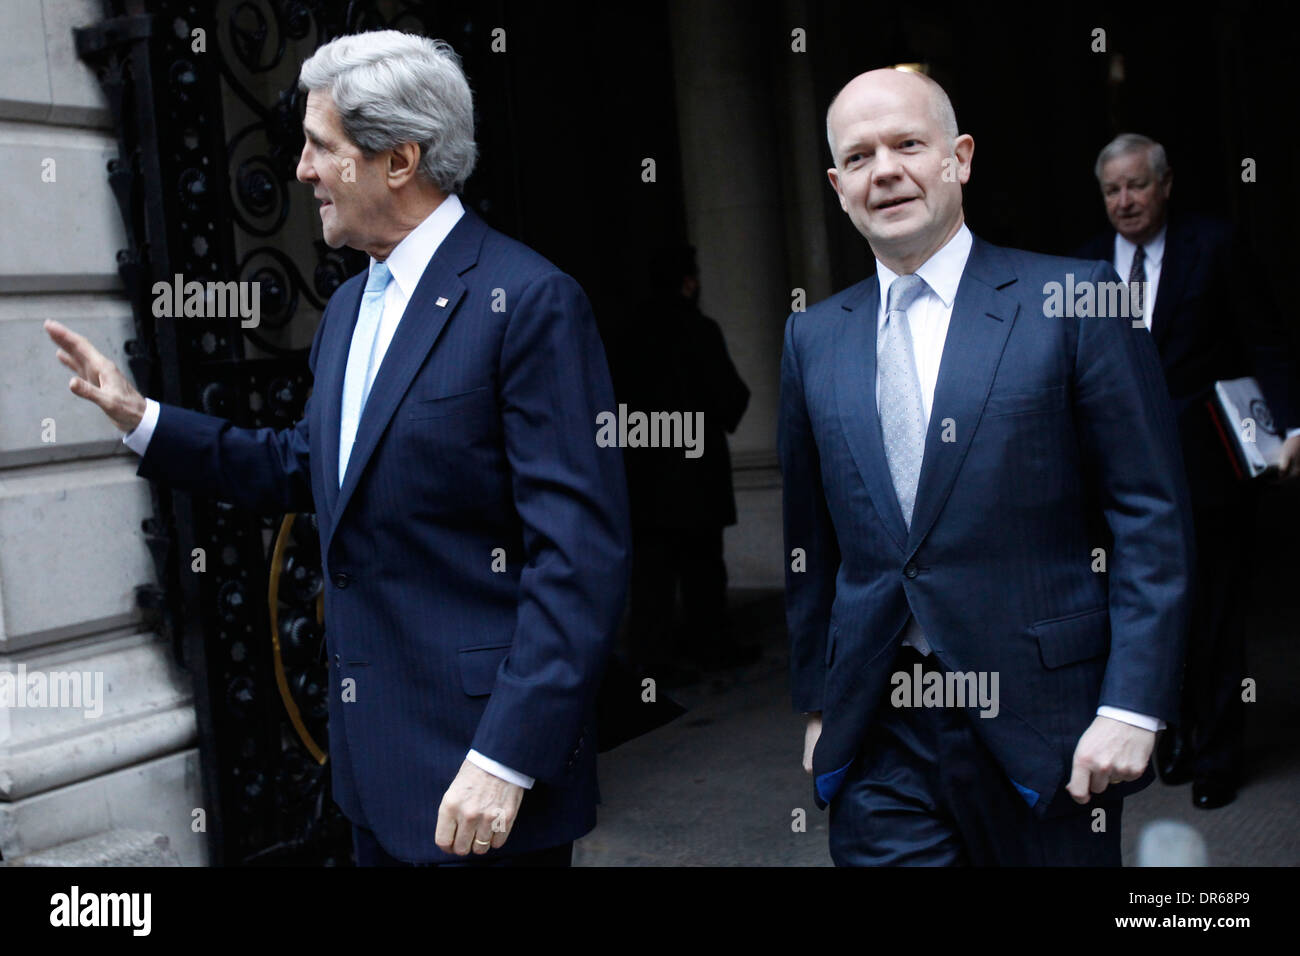 US Secretary of State John Kerry (L) and his British counterpart William Hague (R) outside number 10 Downing Street - Stock Image